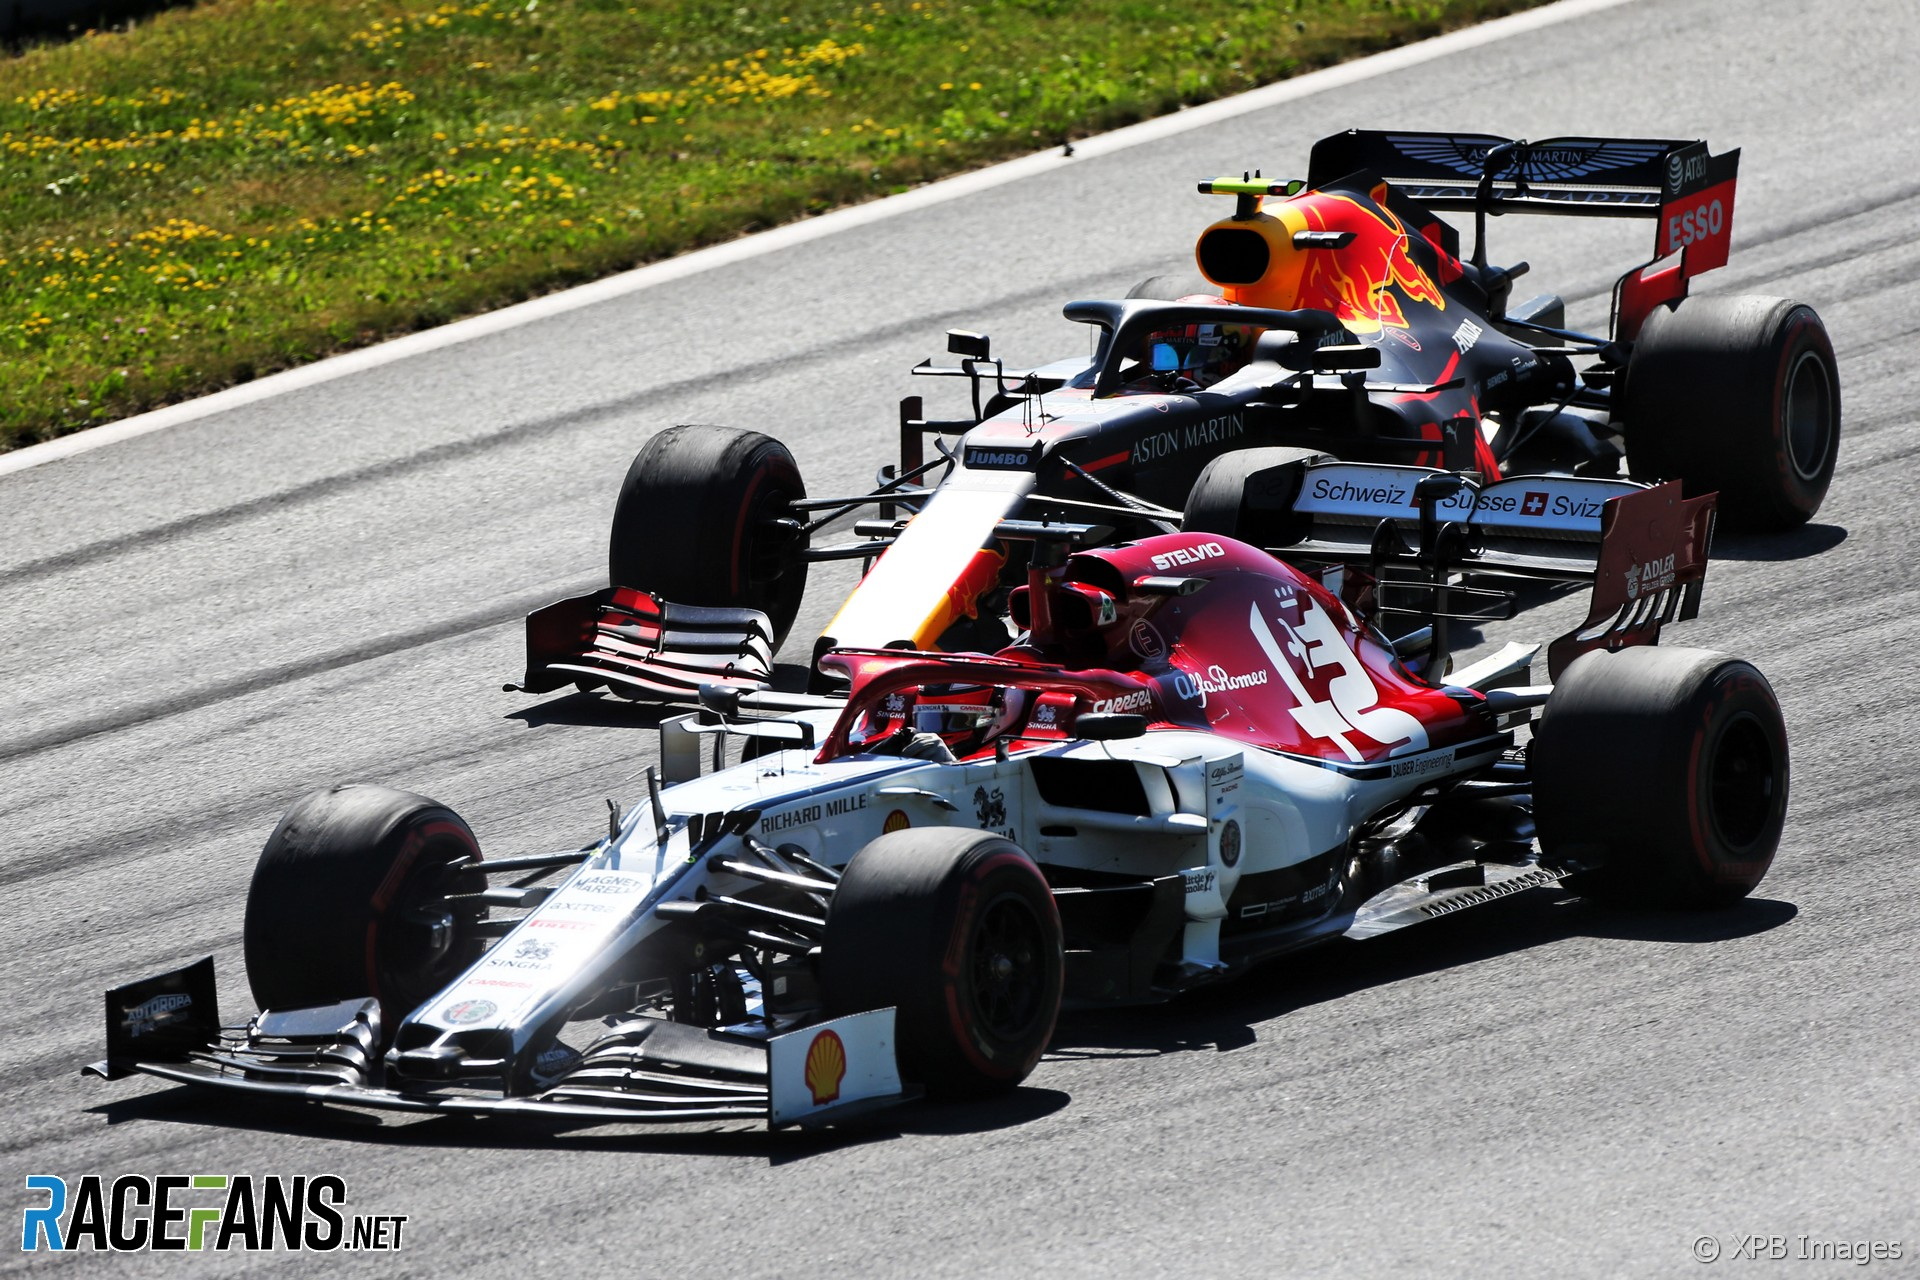 Motor Racing - Formula One World Championship - Austrian